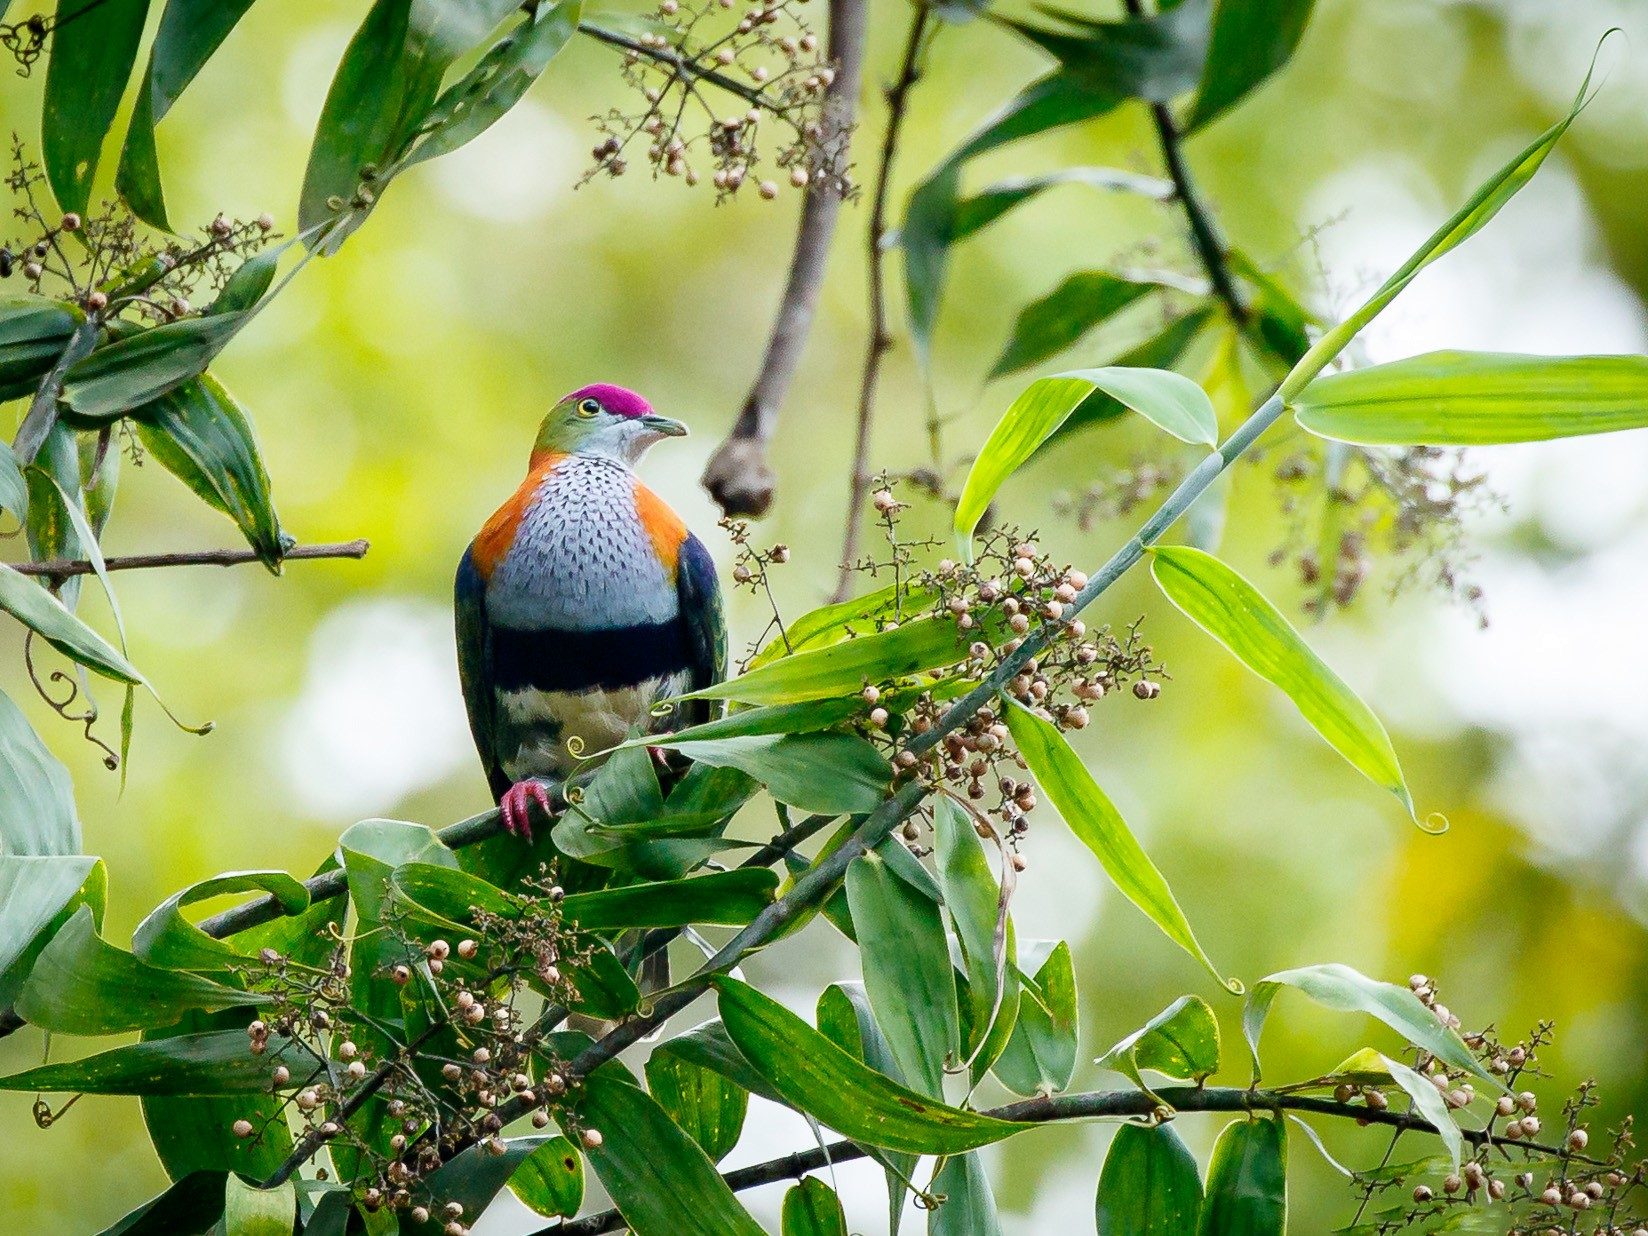 Superb Fruit-Dove - Luke Shelley